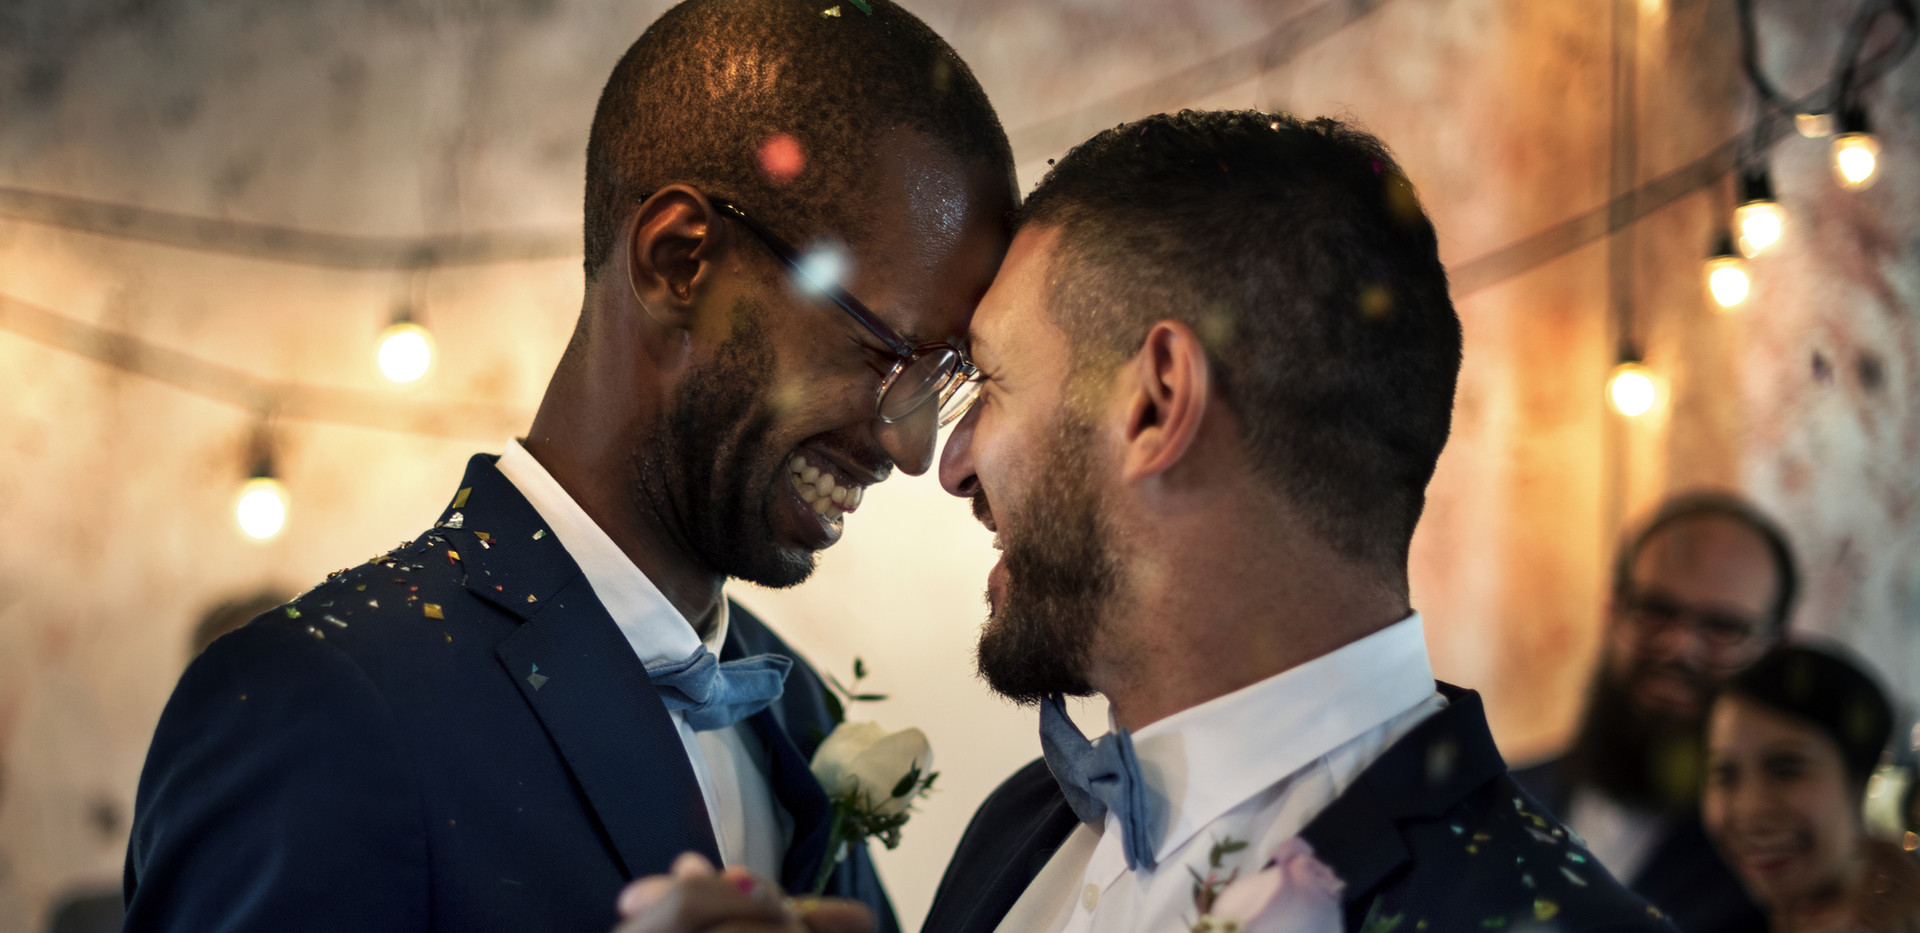 LGBTQ Friendly DJ service in Wilmington NC offering affordable wedding dj services.